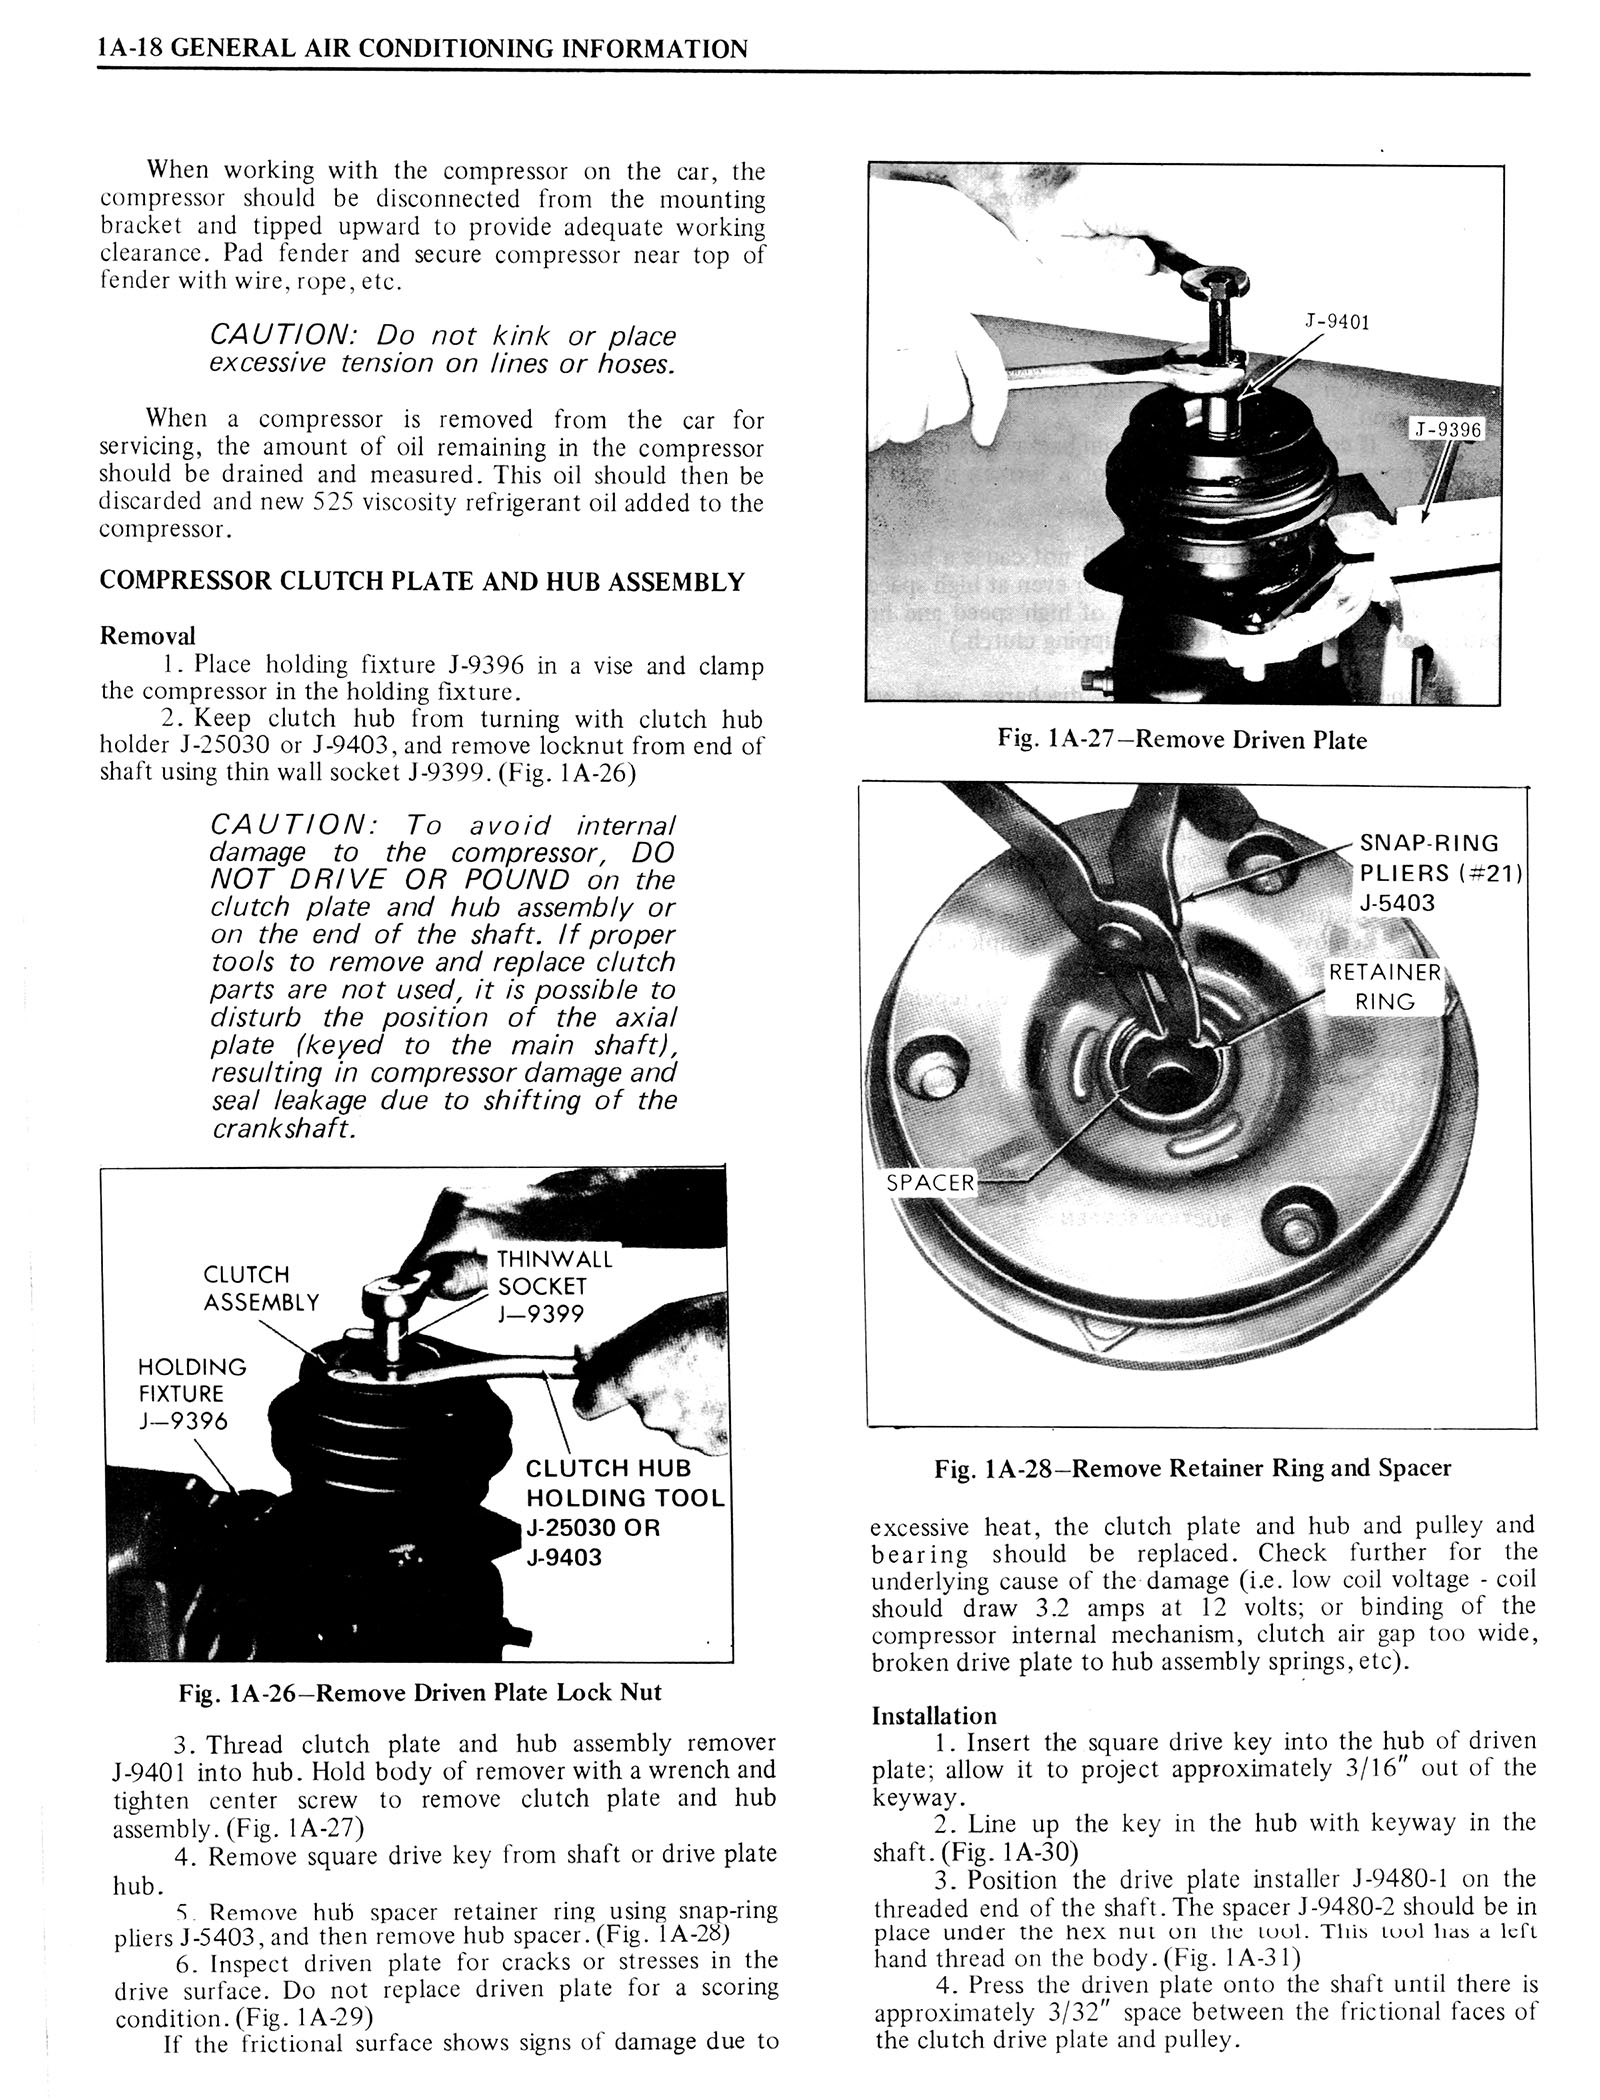 1976 Oldsmobile Service Manual page 60 of 1390